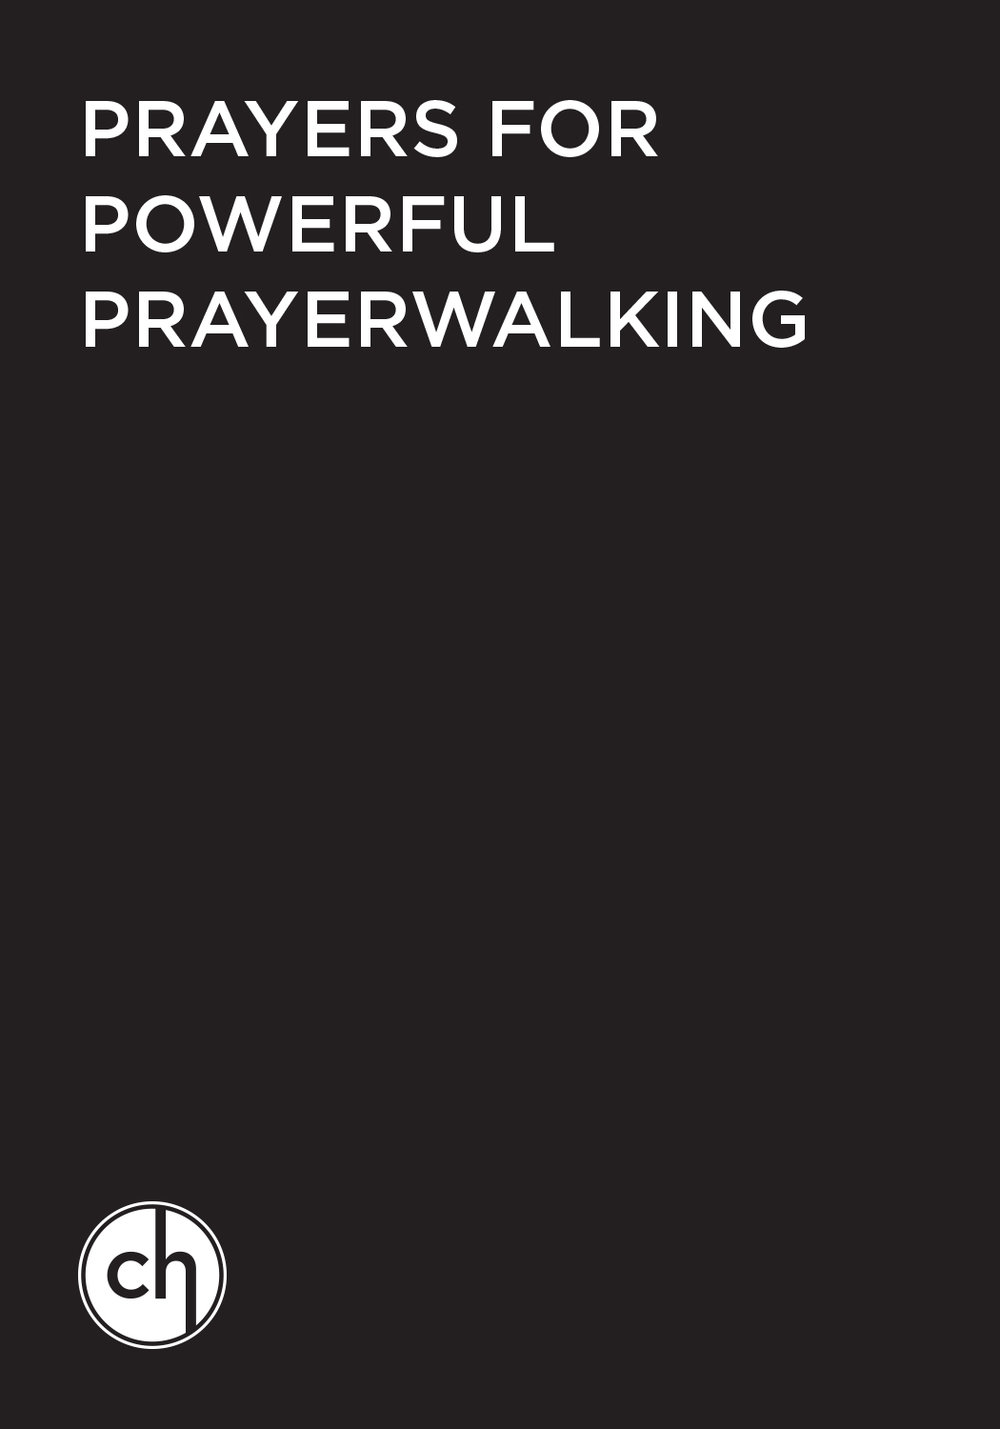 You can download this little booklet of instructions and prompts for the Great Day of Prayer.